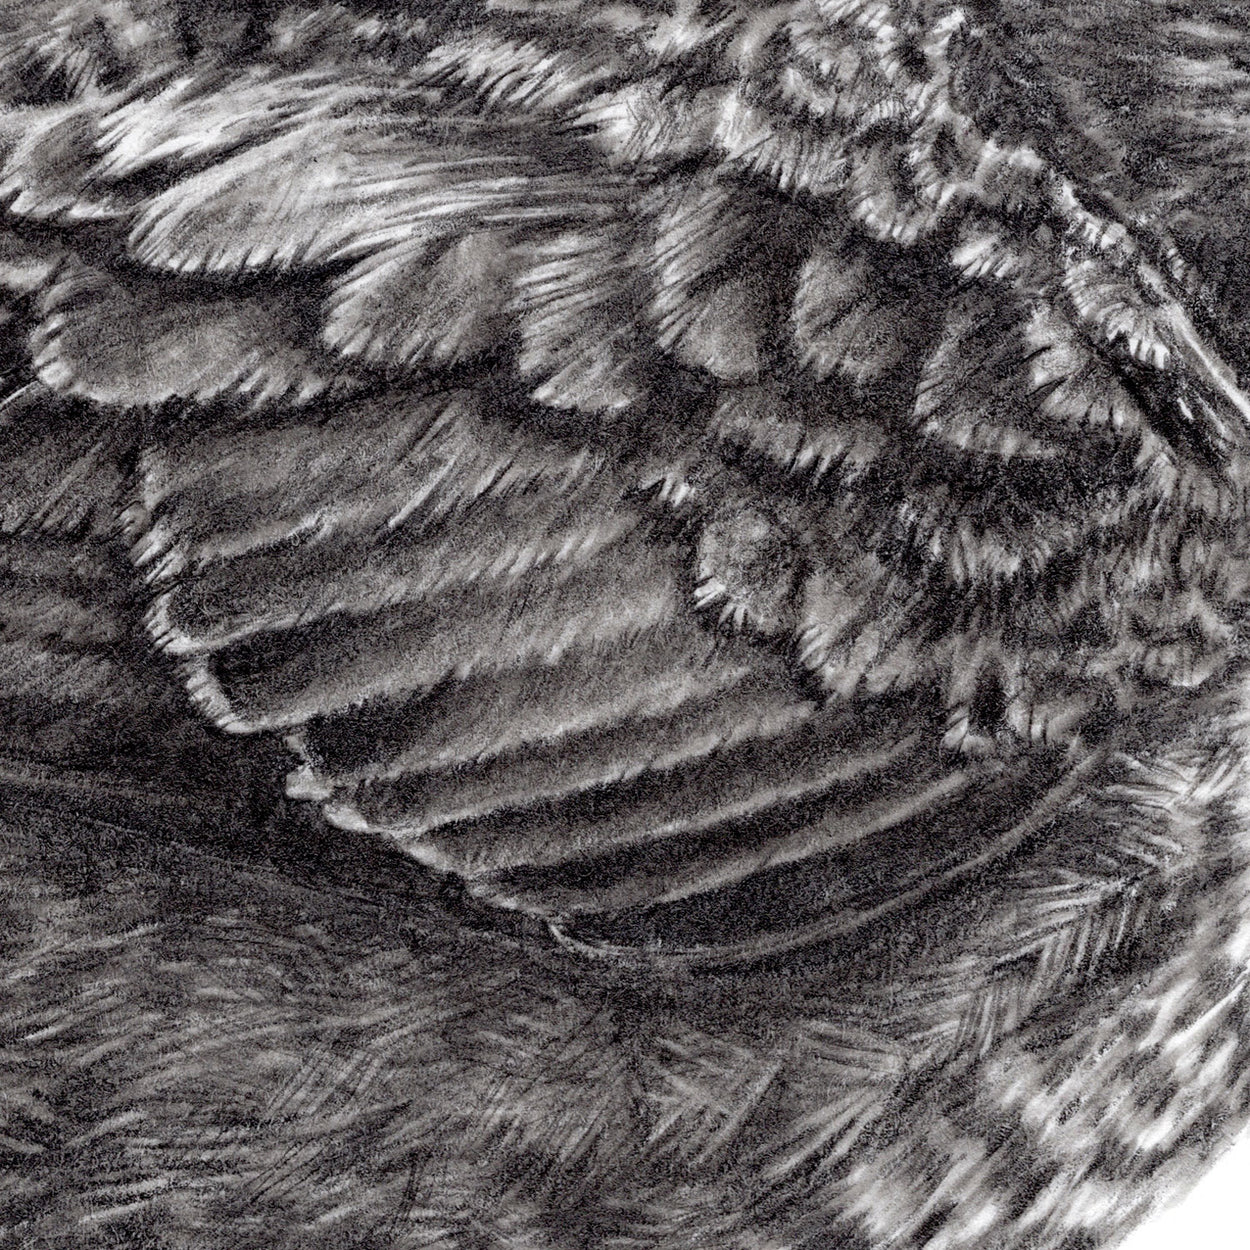 Dipper Feathers Drawing Close-up - The Thriving Wild